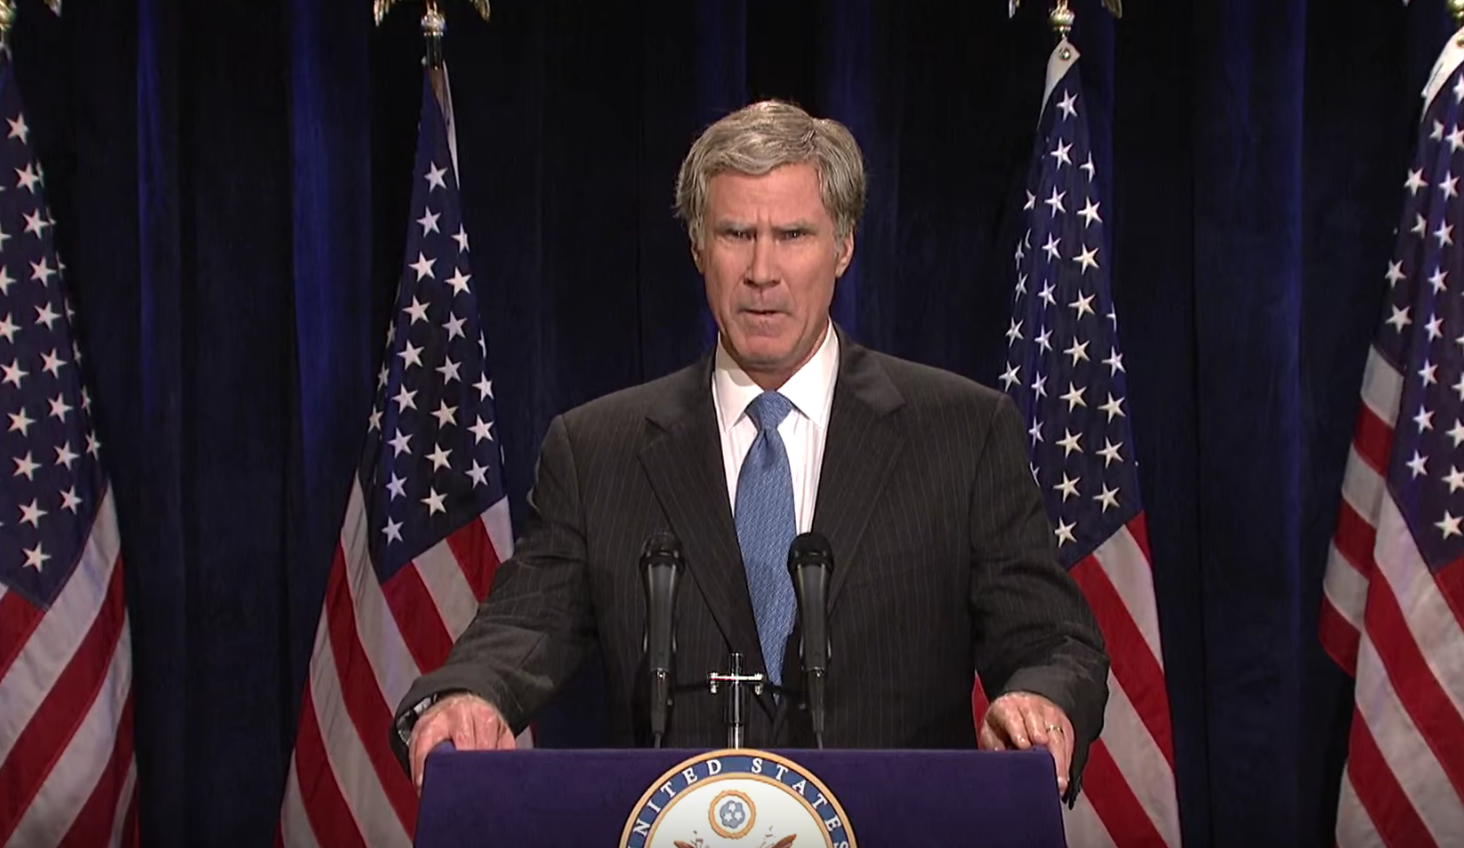 Will Ferrell tries to resurrect George W. Bush for a third presidential term on Saturday Night Live